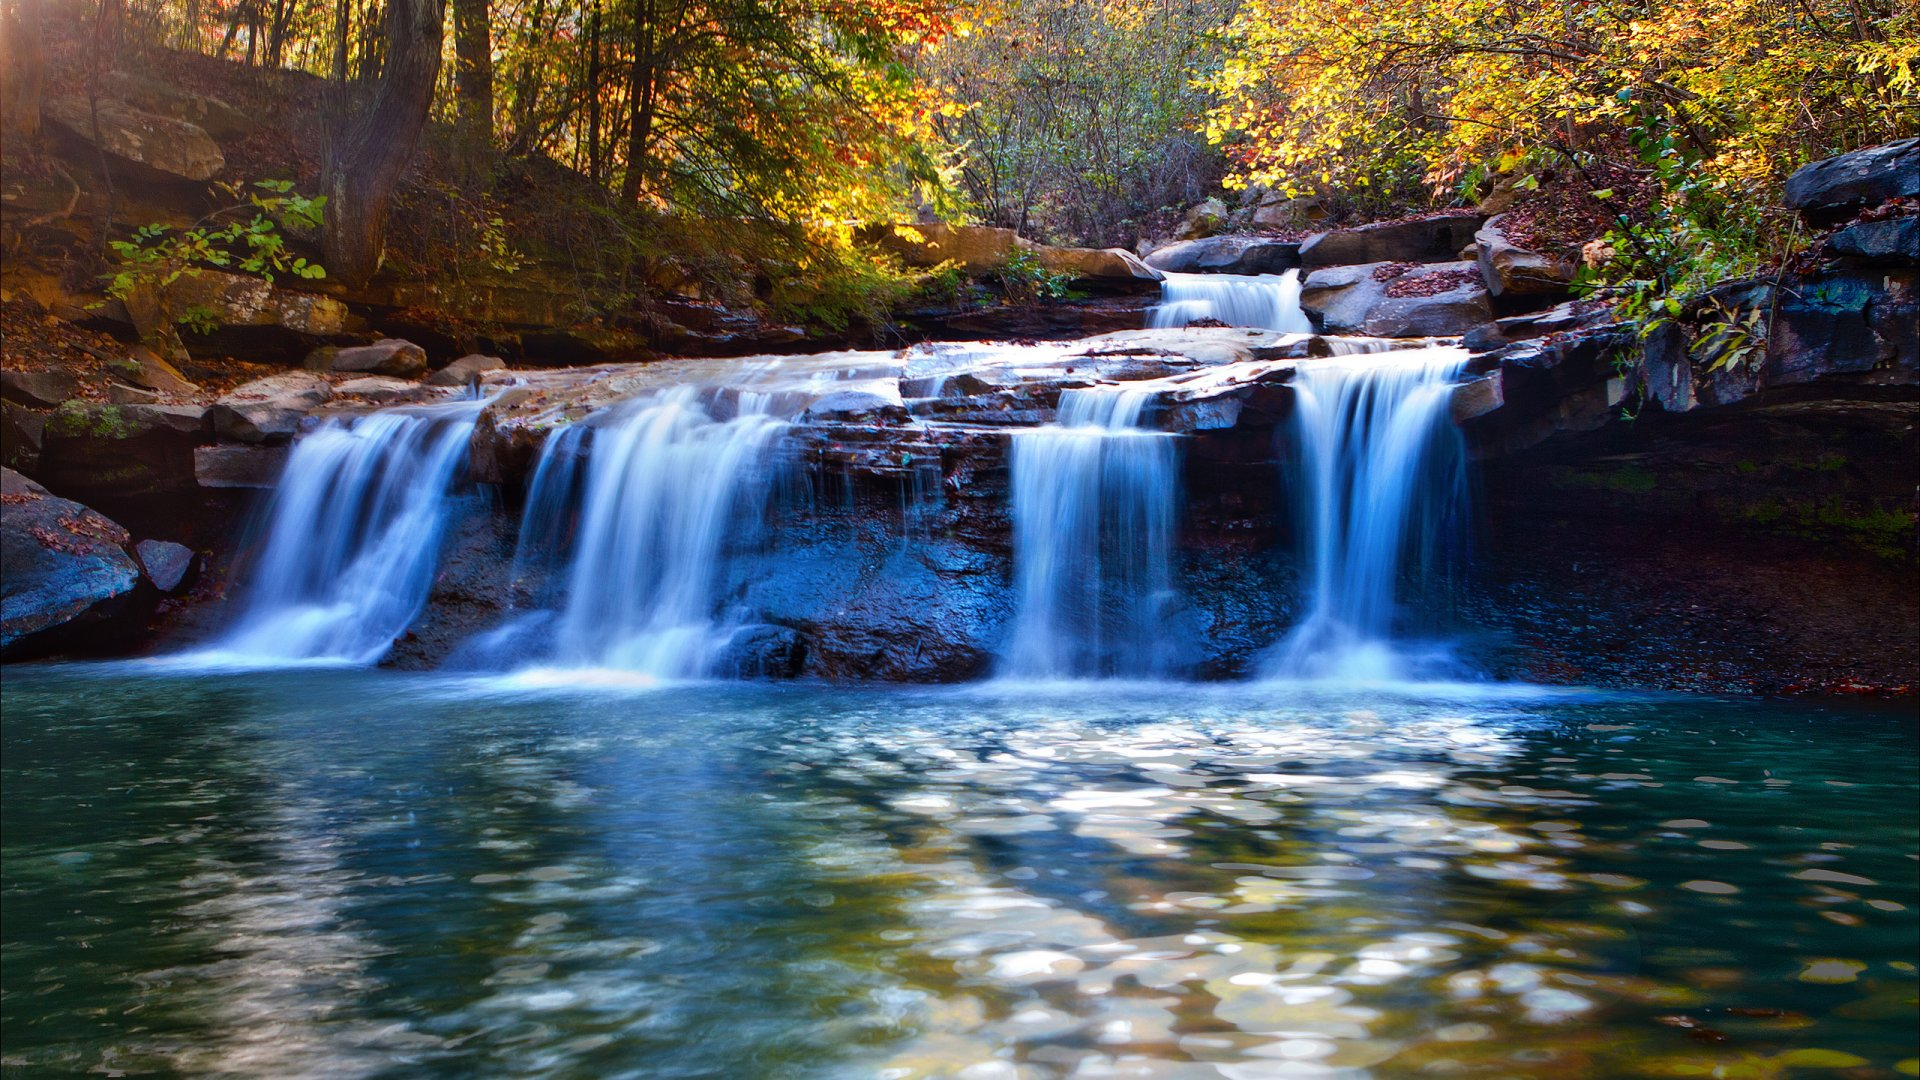 River Waterfall Autumn - Most Beautiful Waterfall Wallpapers for Desktop Background